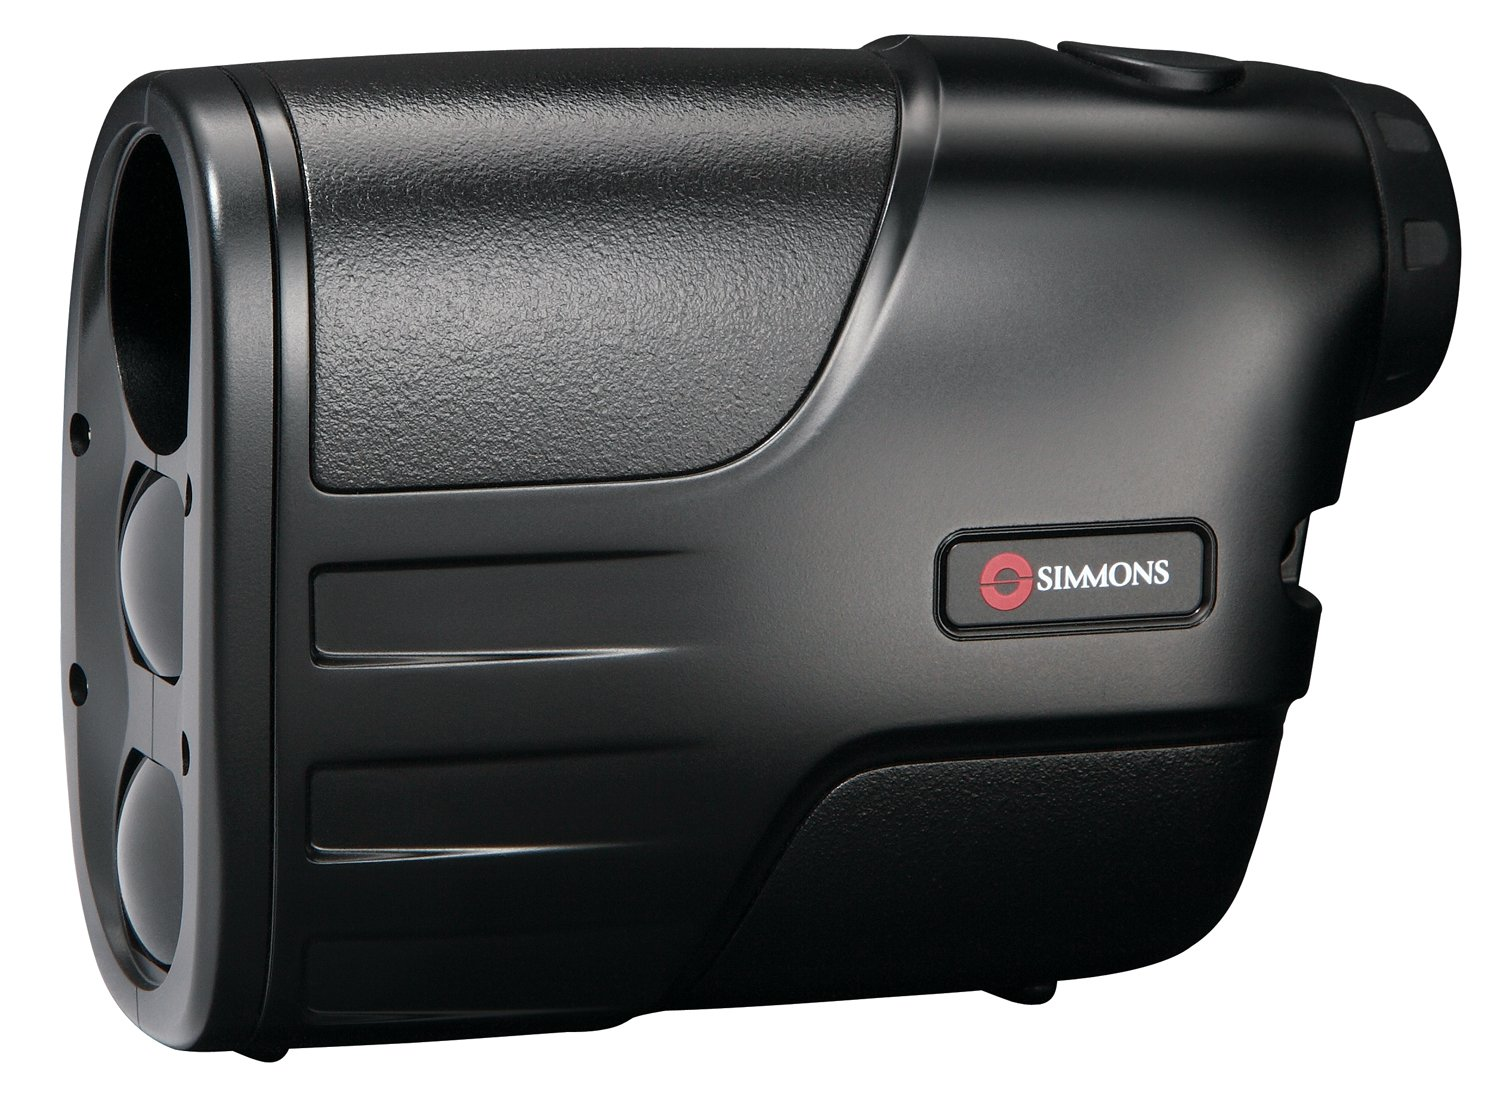 Simmons 801405 Rangefinder, 4x20LRF 600 by Simmons (Image #1)